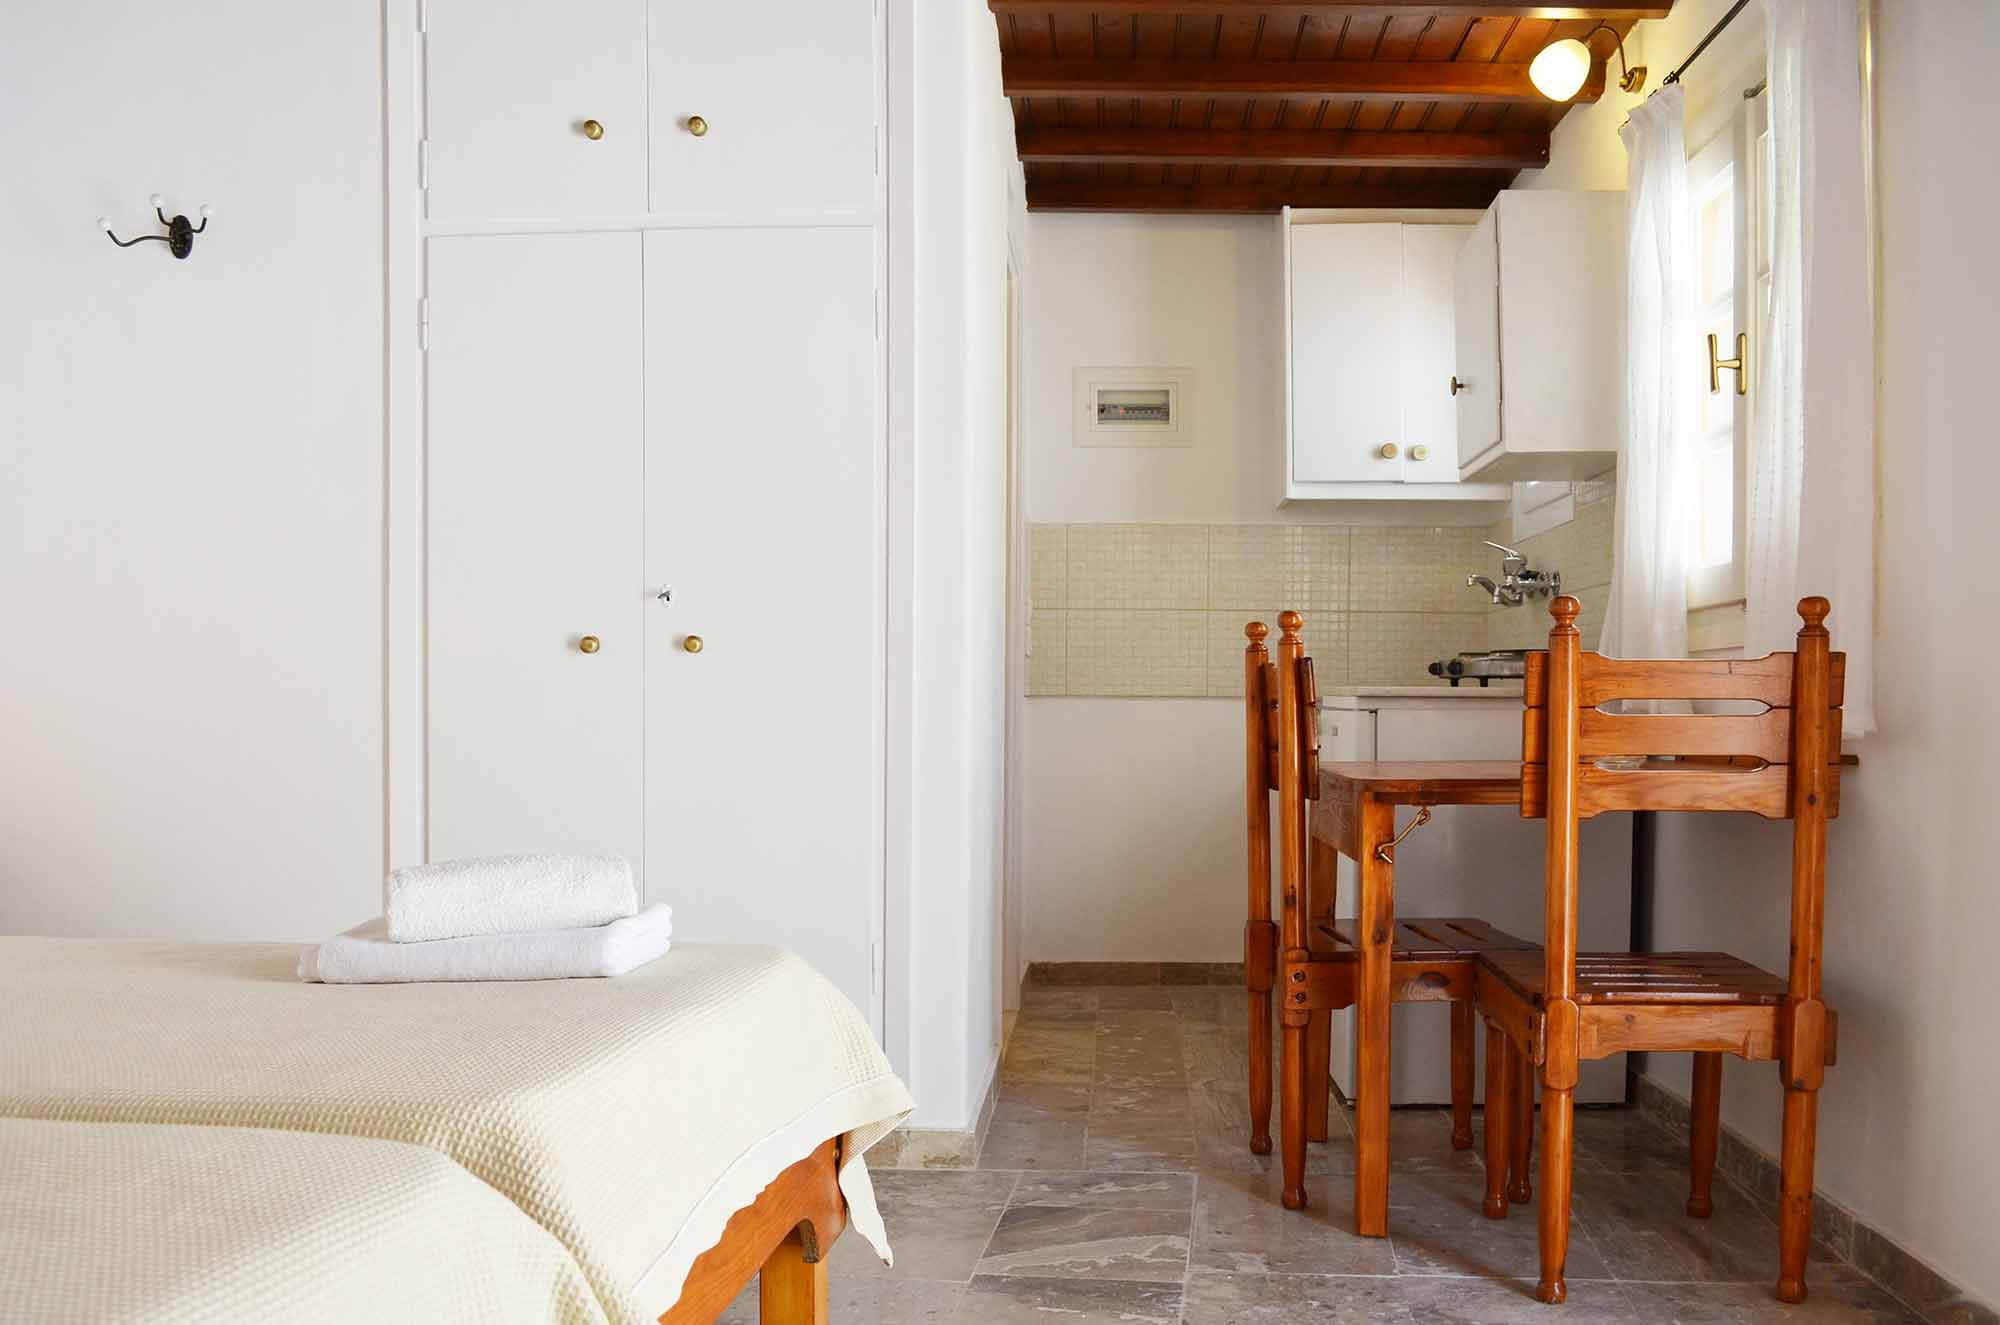 Villa Pinelopi - Studio for rent in Mykonos Town